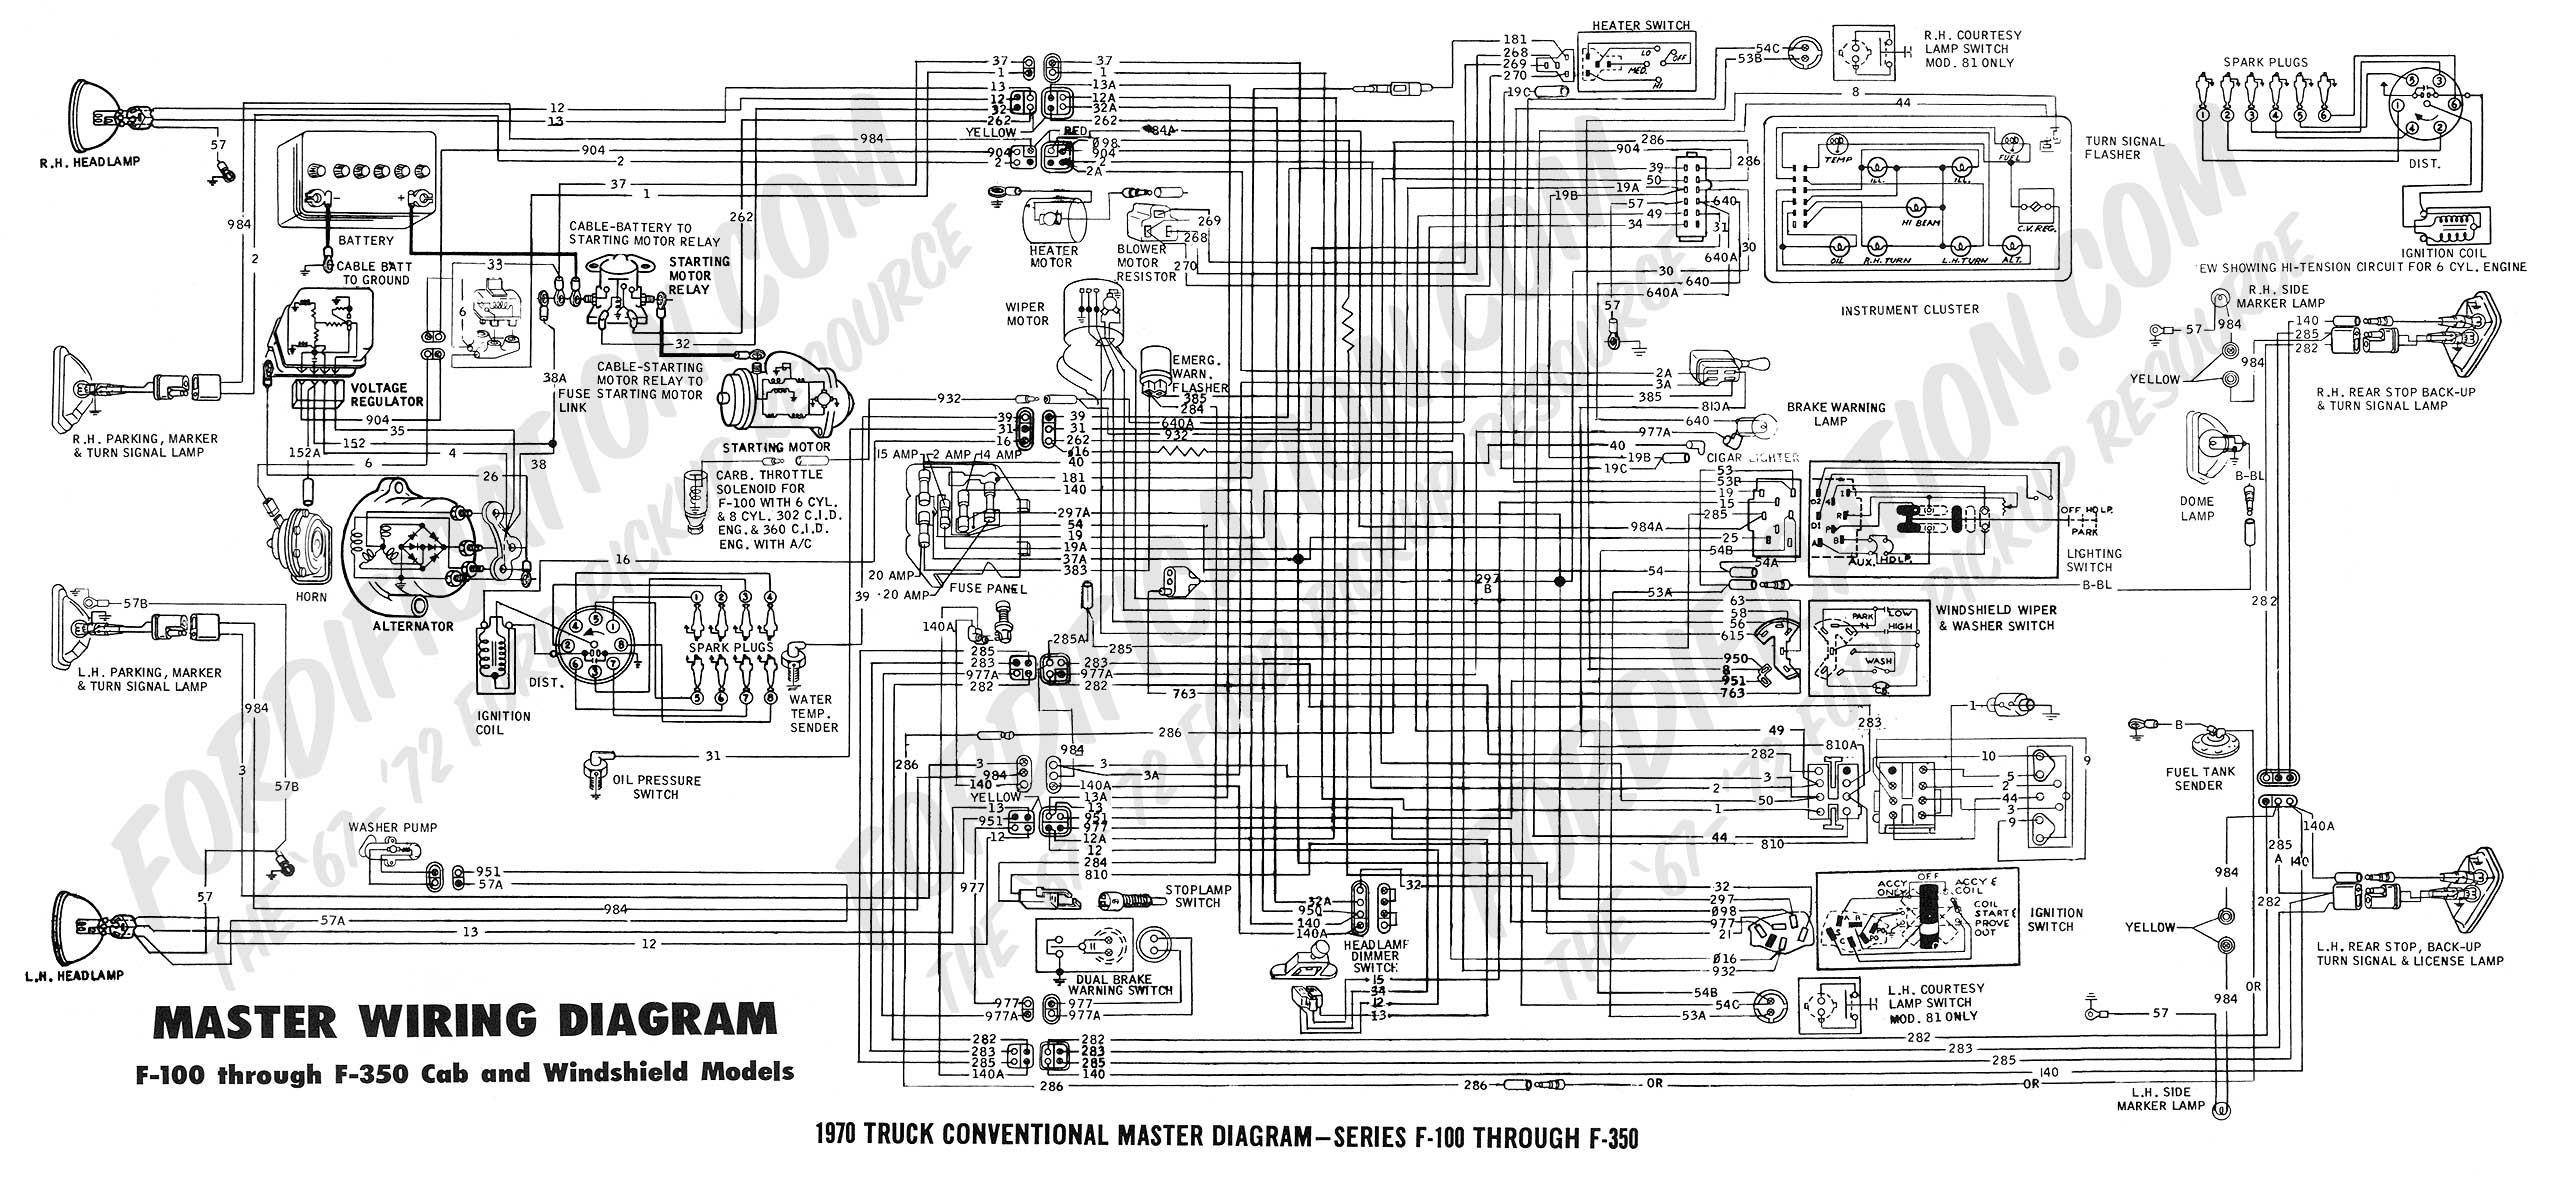 2000 ford f150 wiring diagram 2000 wiring diagrams online